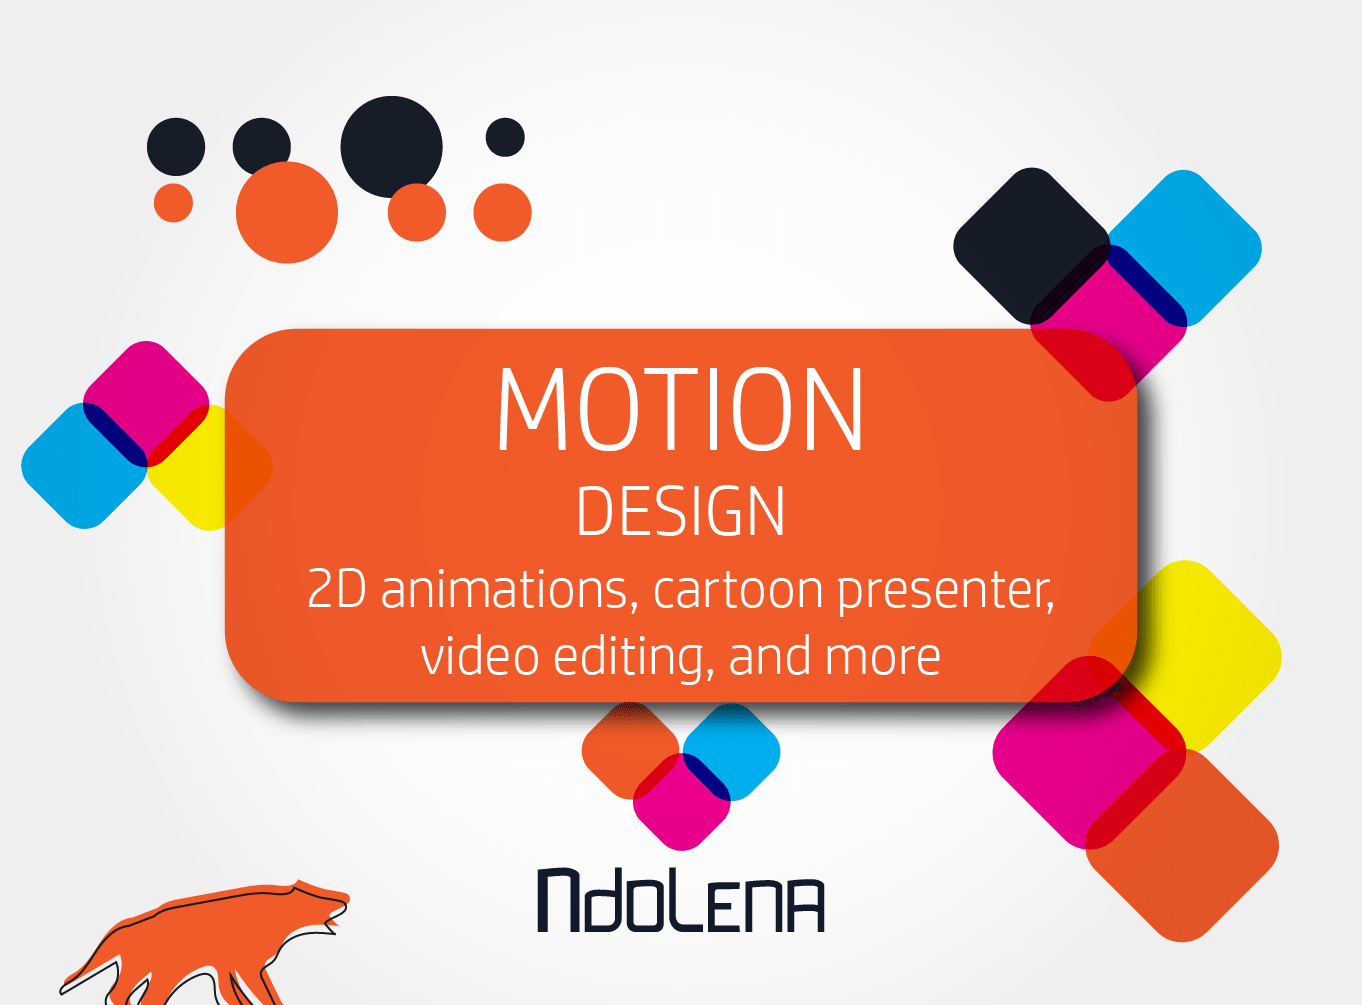 motion design services